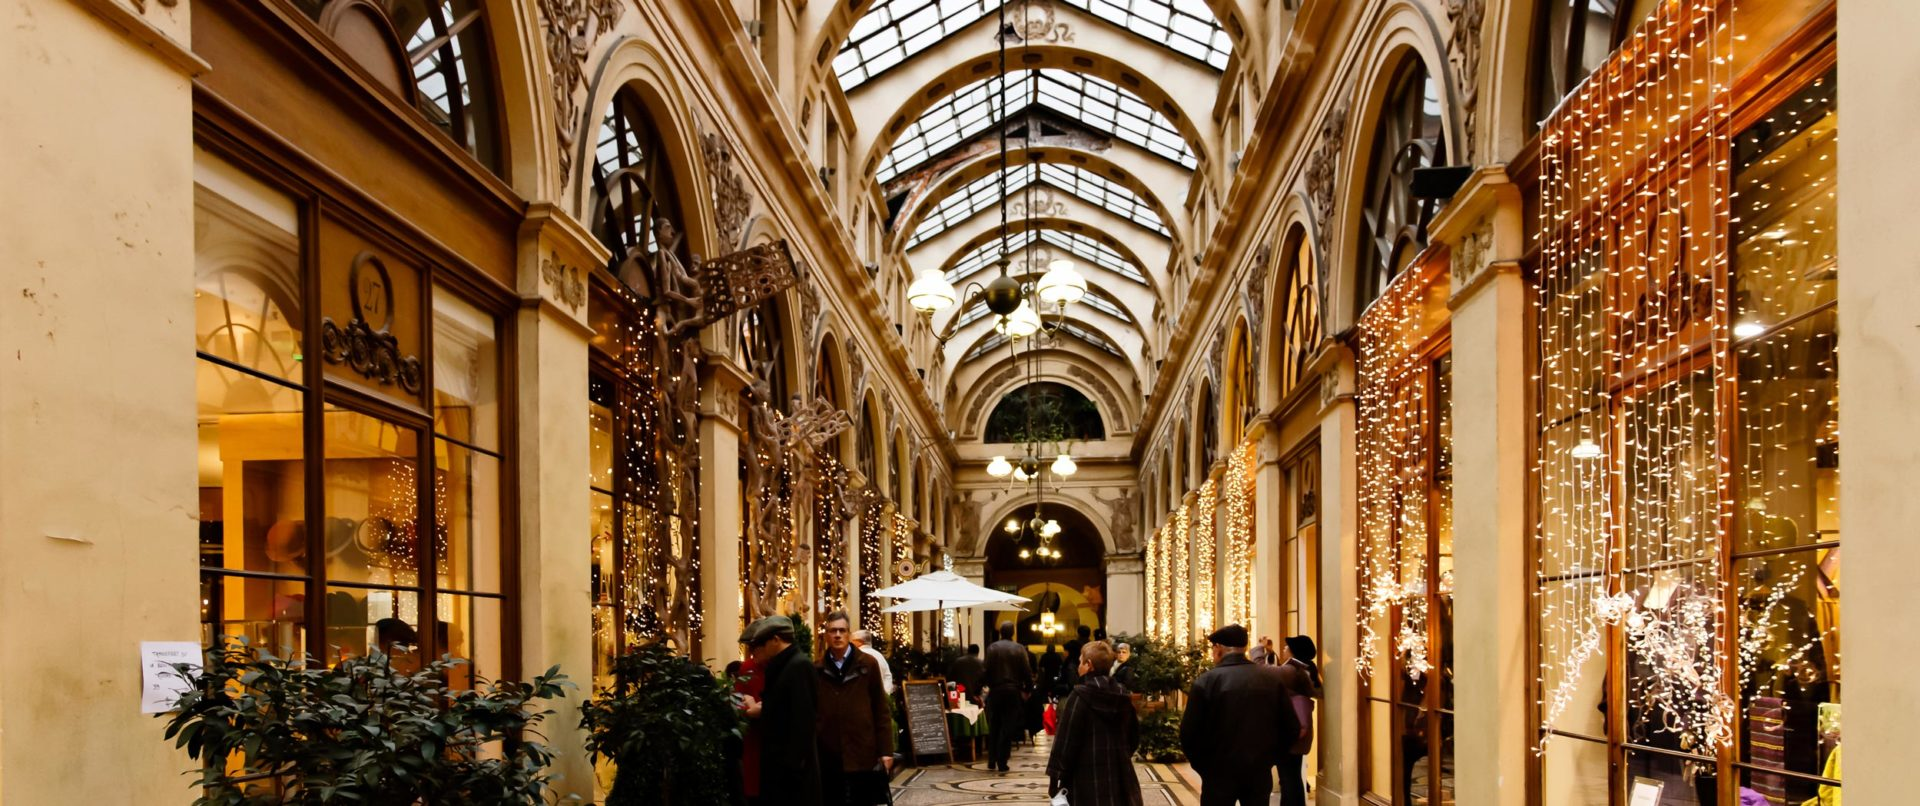 Christmas-treasure-hunt-paris-covered-passages